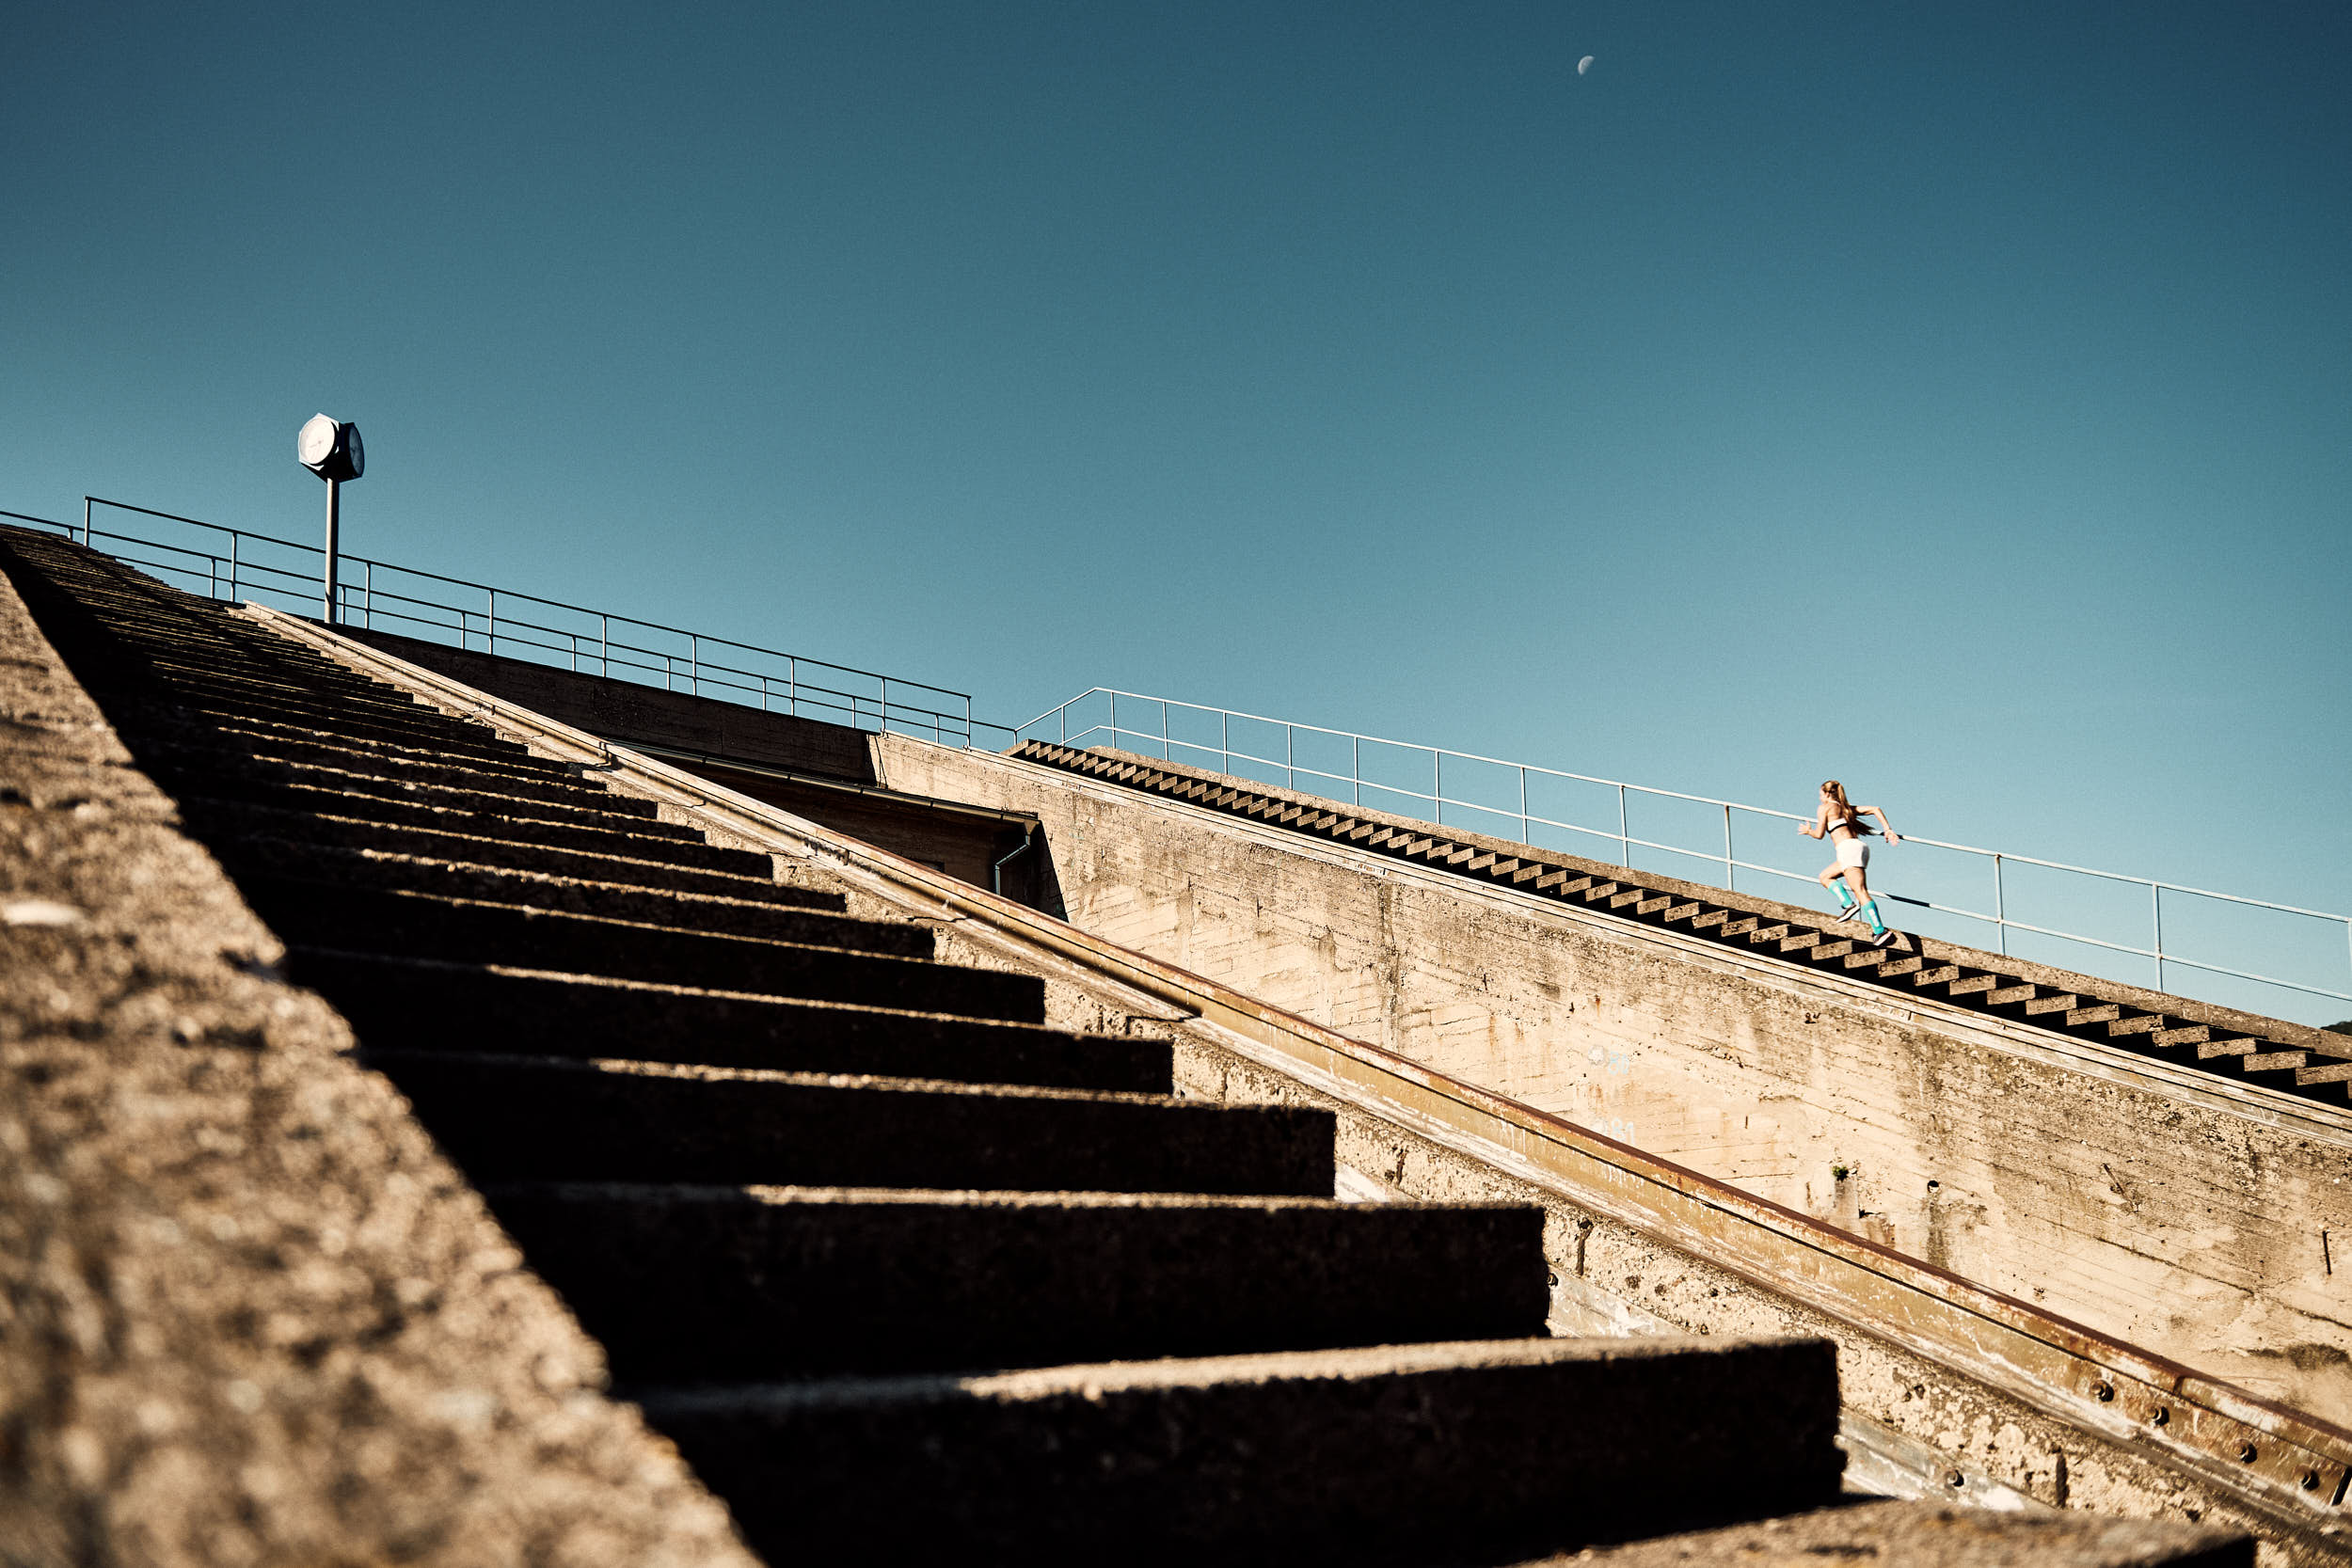 Action photography of a girl running up the stairs of a concrete structure.